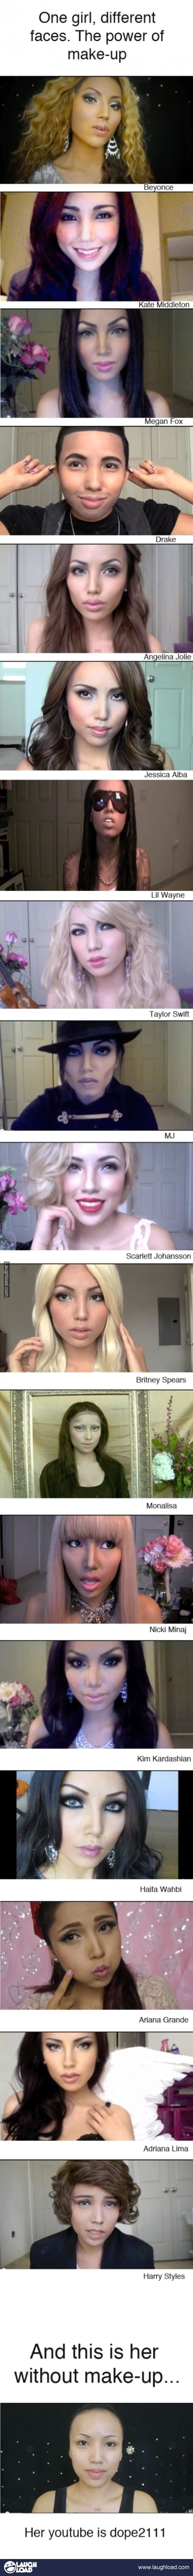 The power of make up. Oh my gosh!